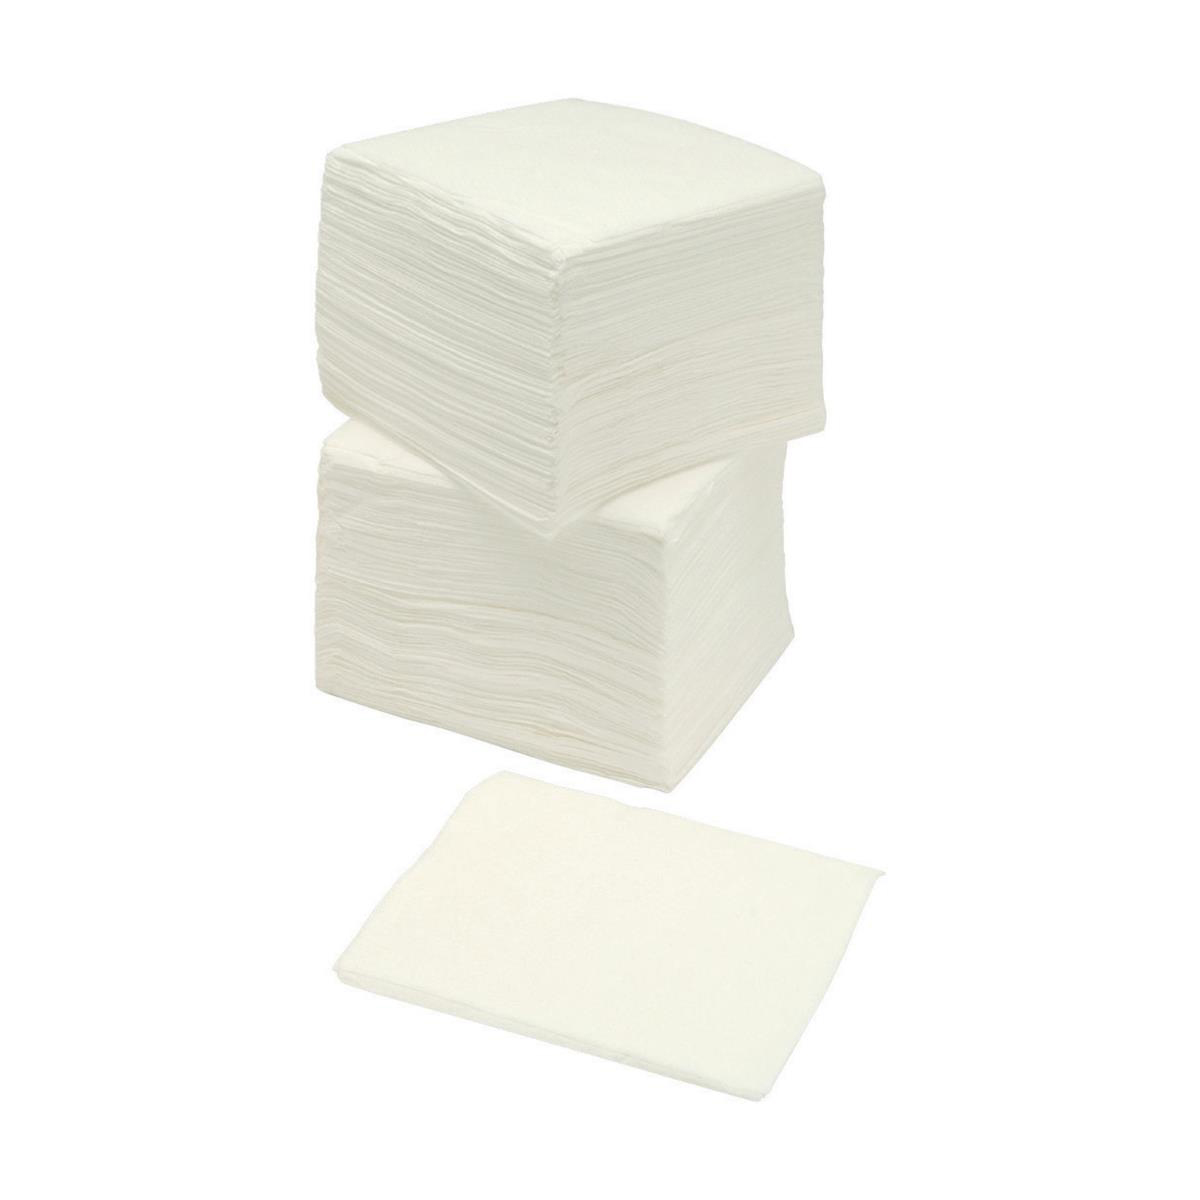 Paper napkins or serviettes 5 Star Facilities Napkin 2-ply 400x400mm White Pack 100